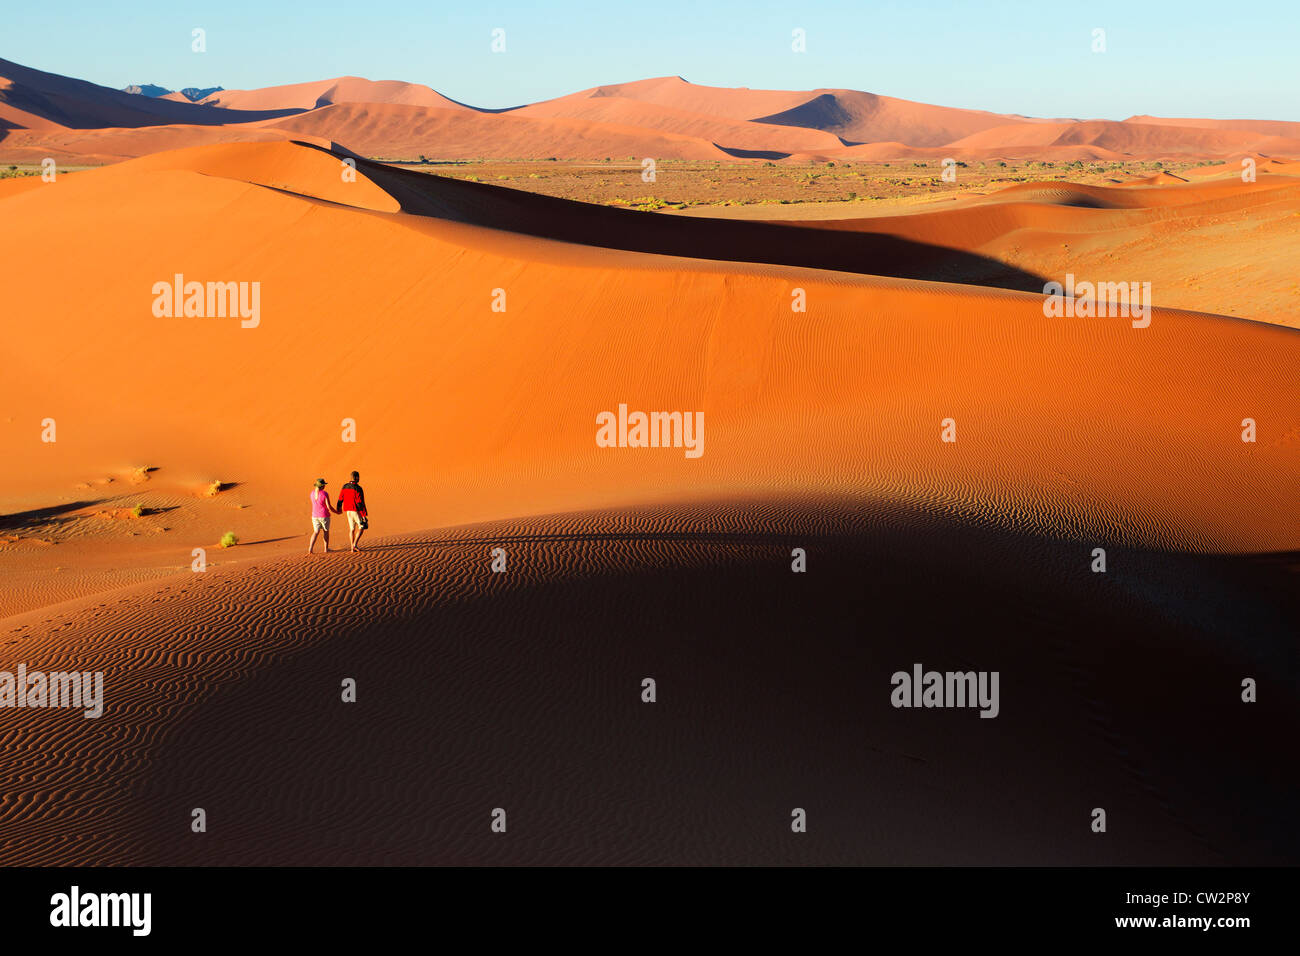 Couple walking along edge of sand dunes,Soussvlei,Namibia. - Stock Image